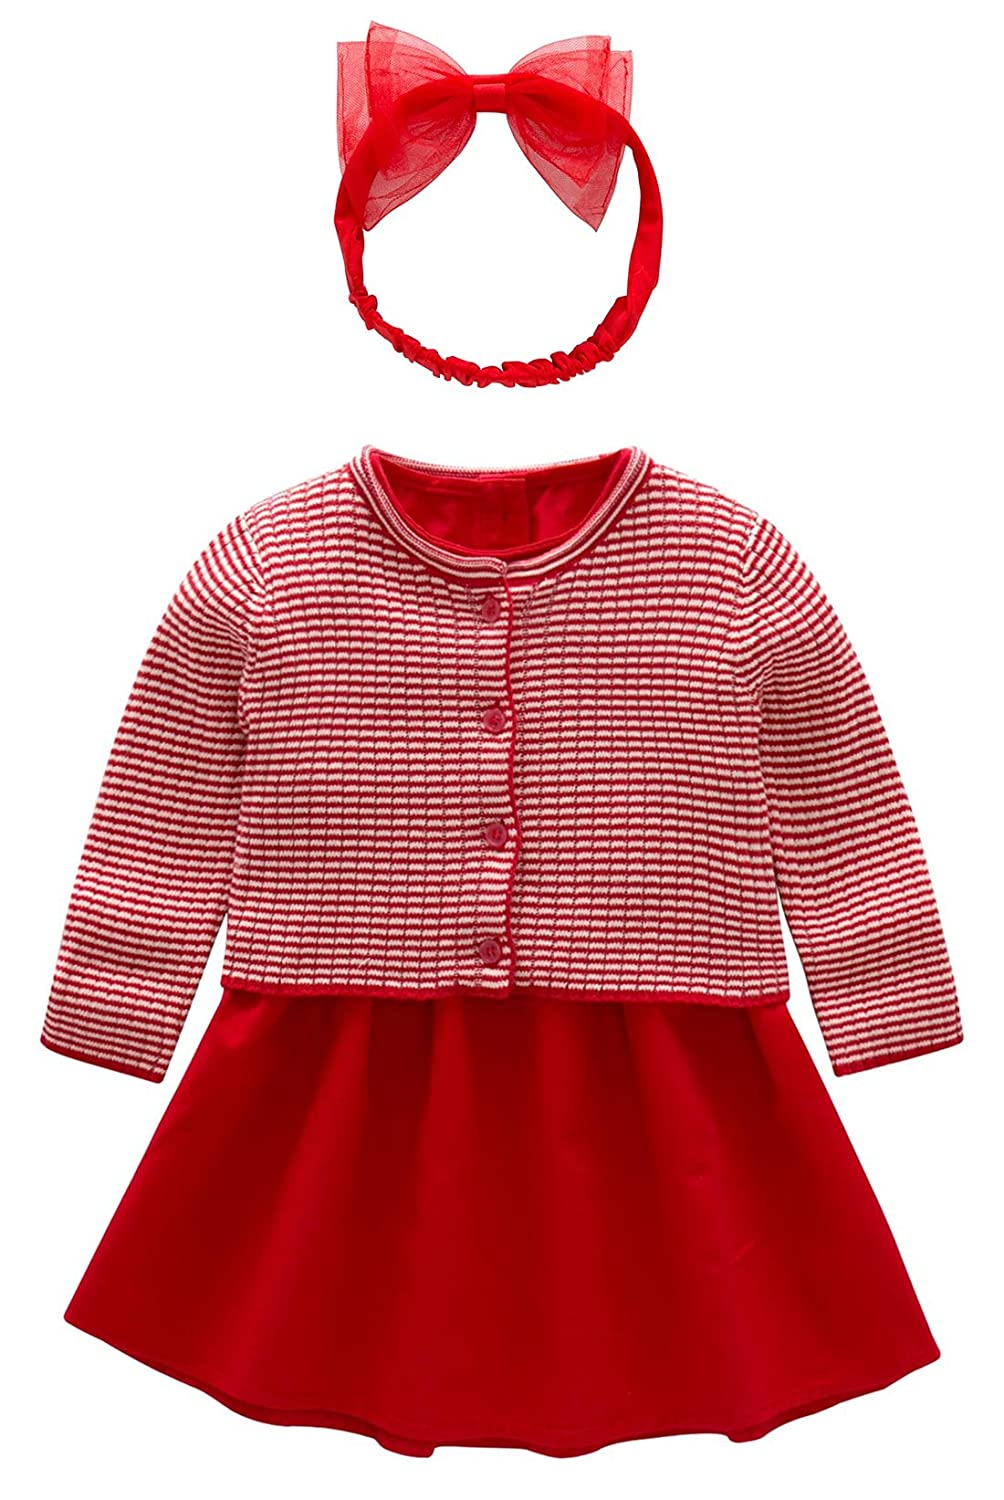 LUOTING Baby Girl Red Dress 3pcs Coat With Headband